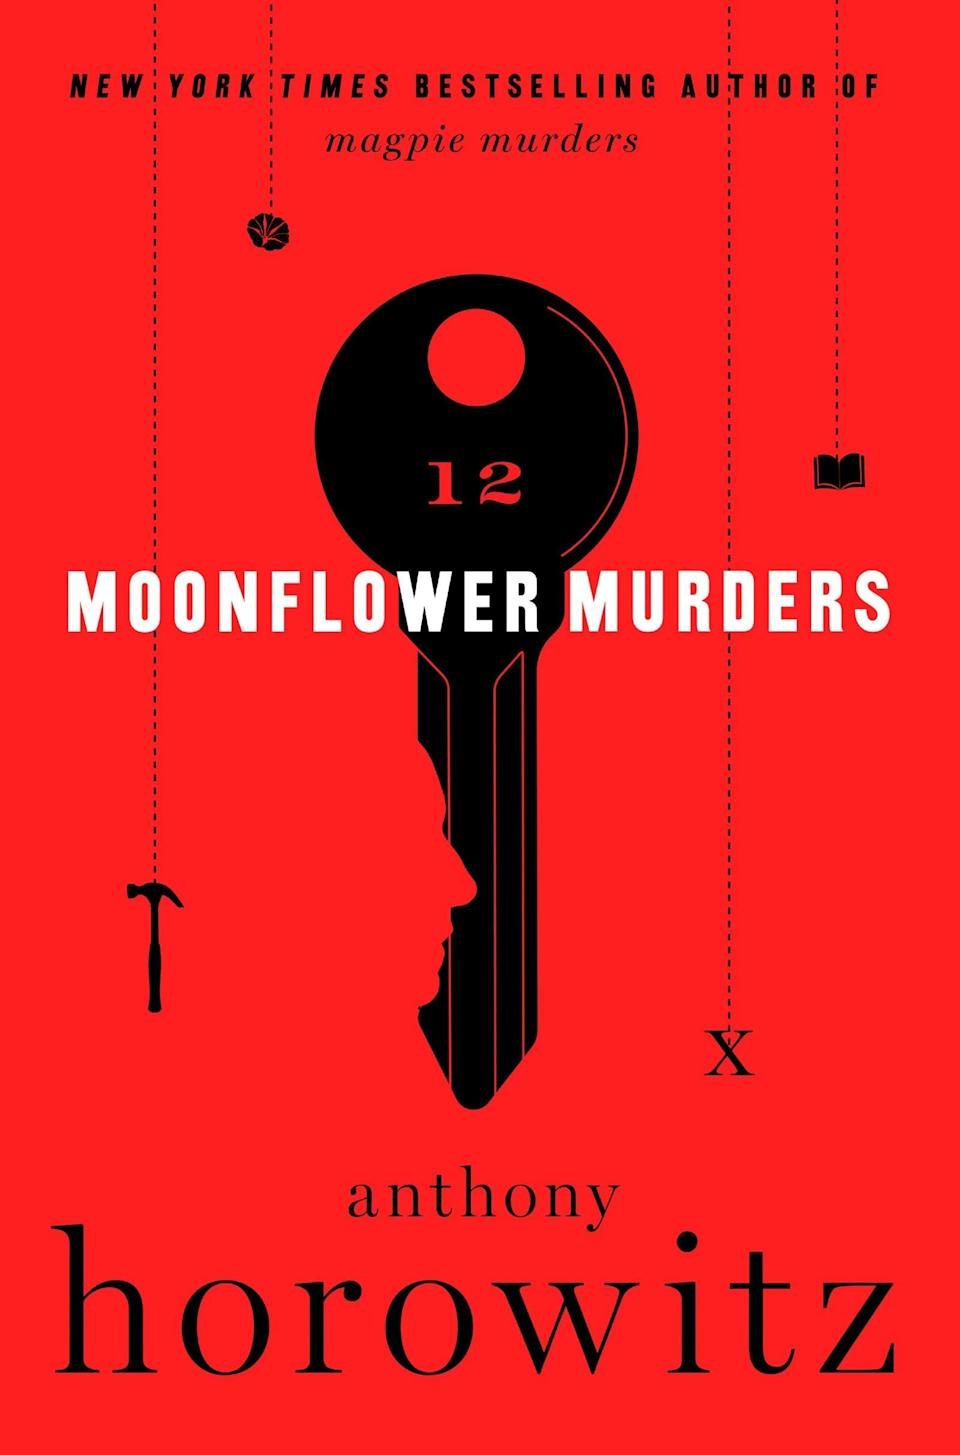 <p><span><strong>Moonflower Murders</strong></span> by Anthony Horowitz is a throwback novel in the vein of Agatha Christie's best works. Publisher turned hotel owner Susan Ryeland is feeling restless until a couple check in and regale her with the tale of a potentially wrongly accused man and a missing woman. Thanks to a surprising connection to the mystery, Susan is certain she can prove the man's innocence and find the woman, and she's ready and willing to take on the case.</p> <p><em>Out Nov. 10</em></p>